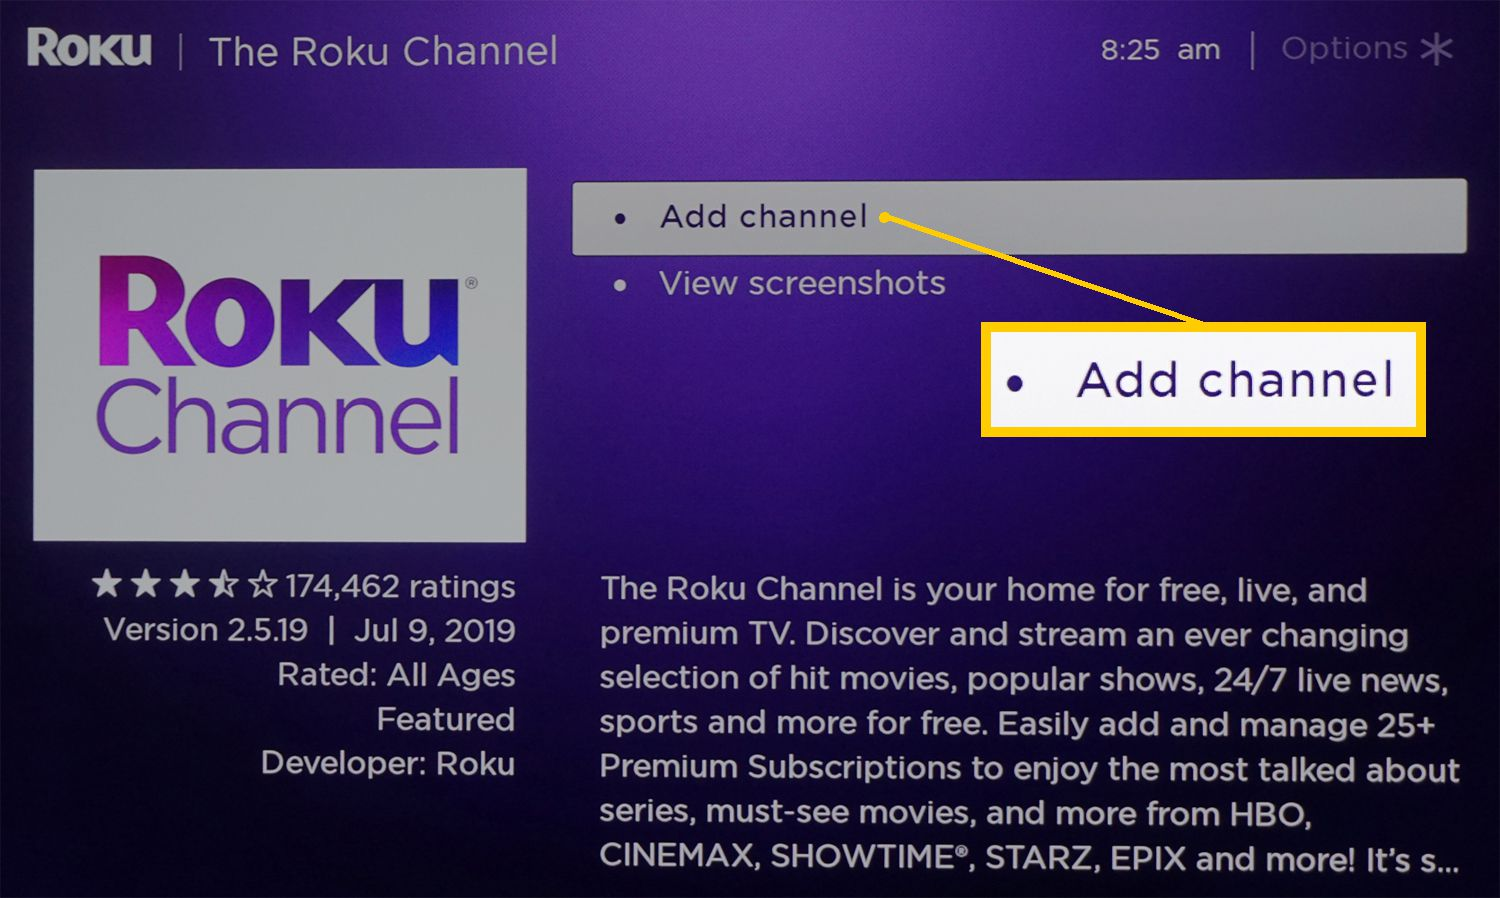 Roku Device – Add The Roku Channel to Viewing Selection